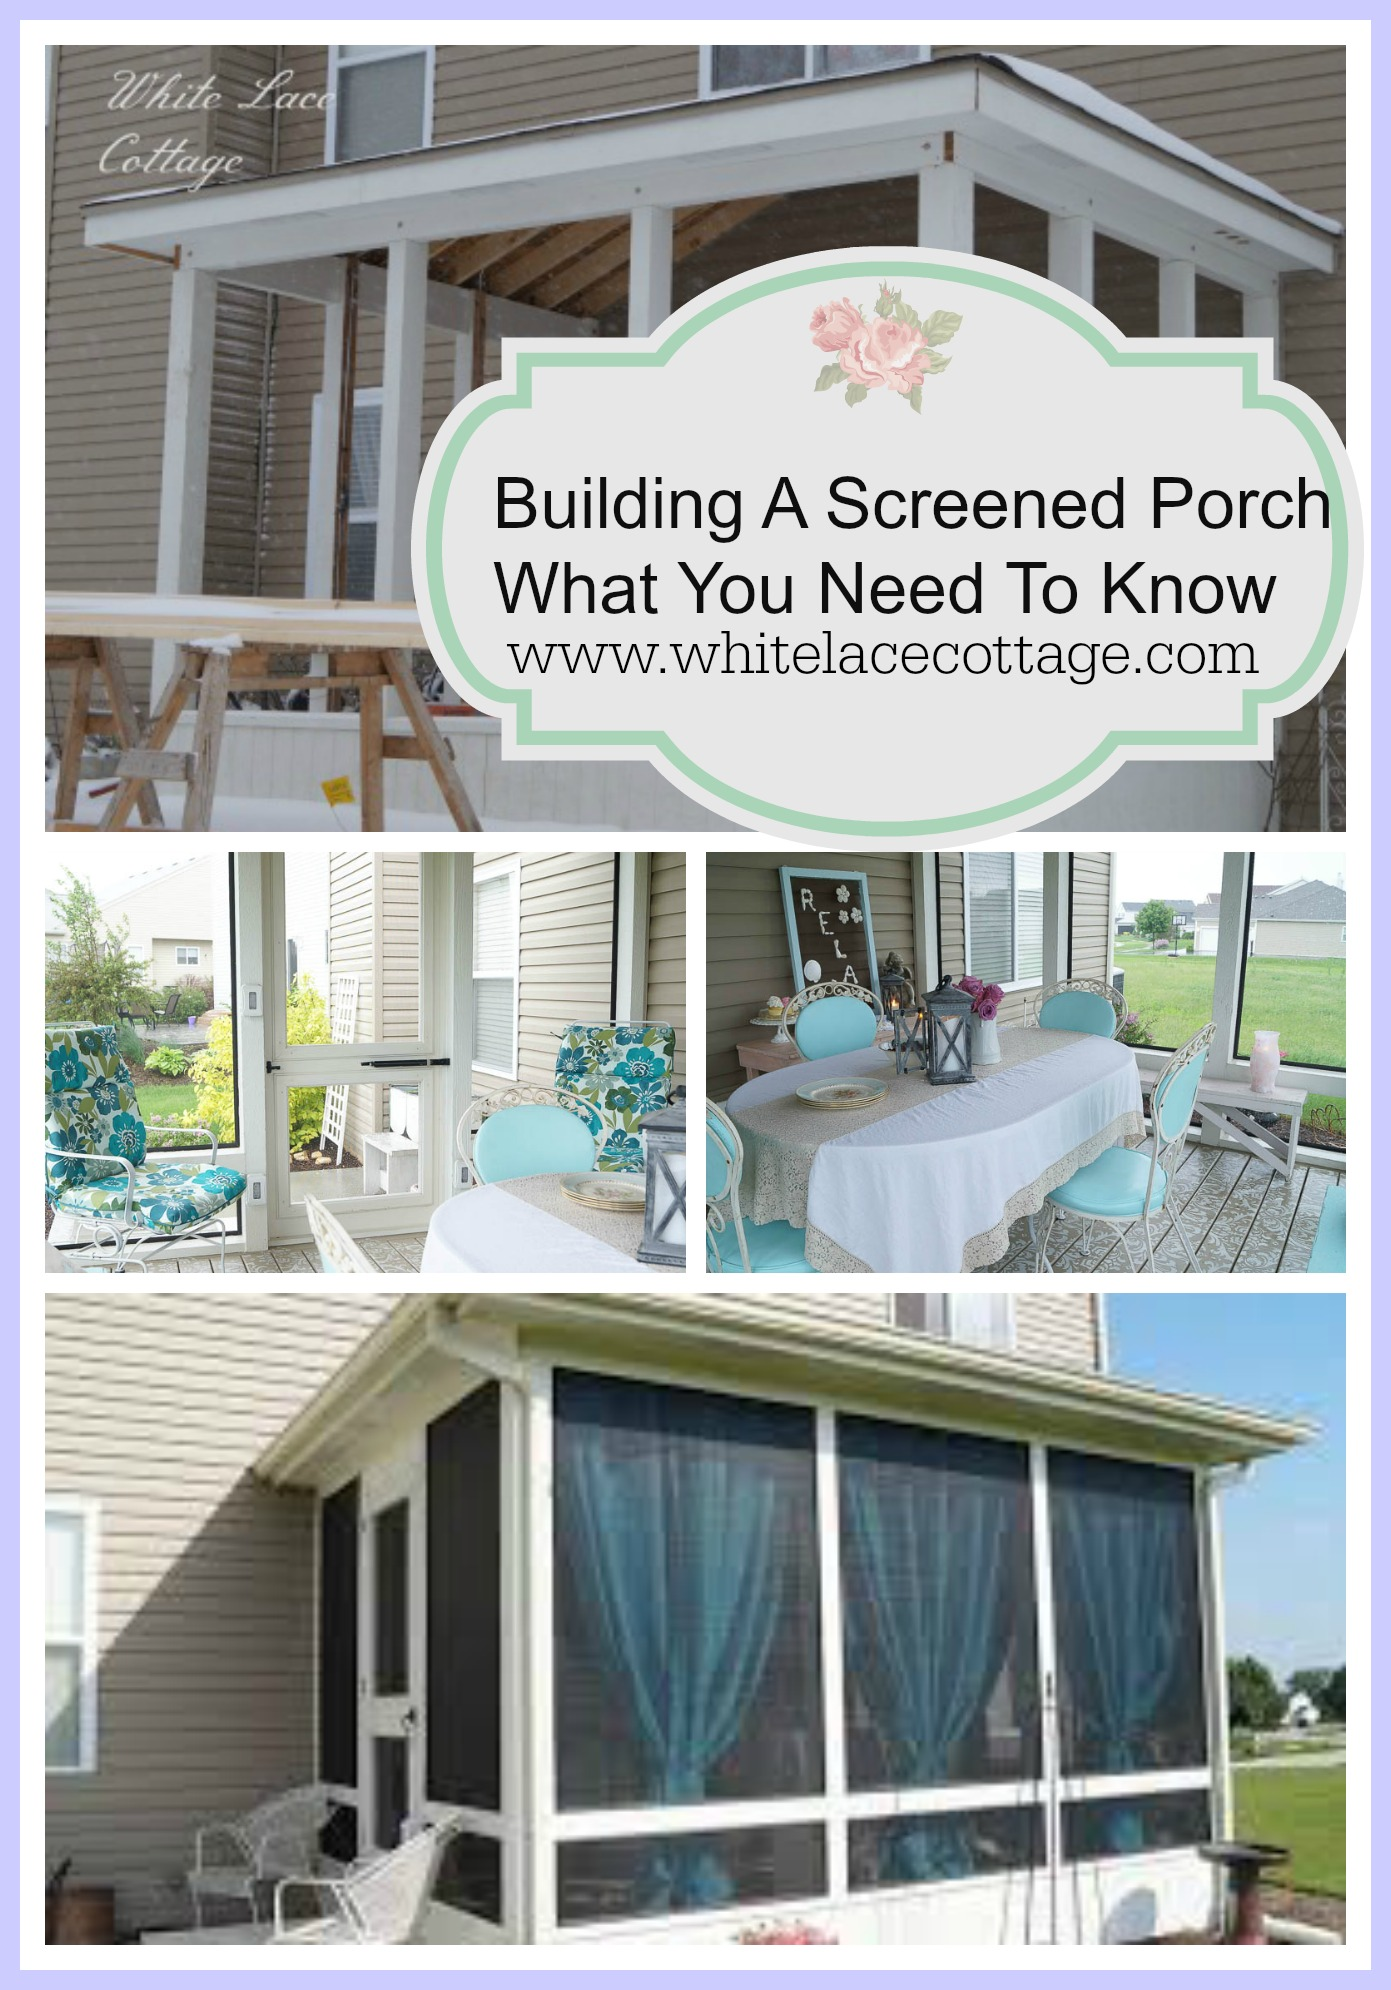 The Porch What We Learned From Building Our Dream. We saved up for many years before buidling our dream porch. If you're thinking of building a porch read this first!